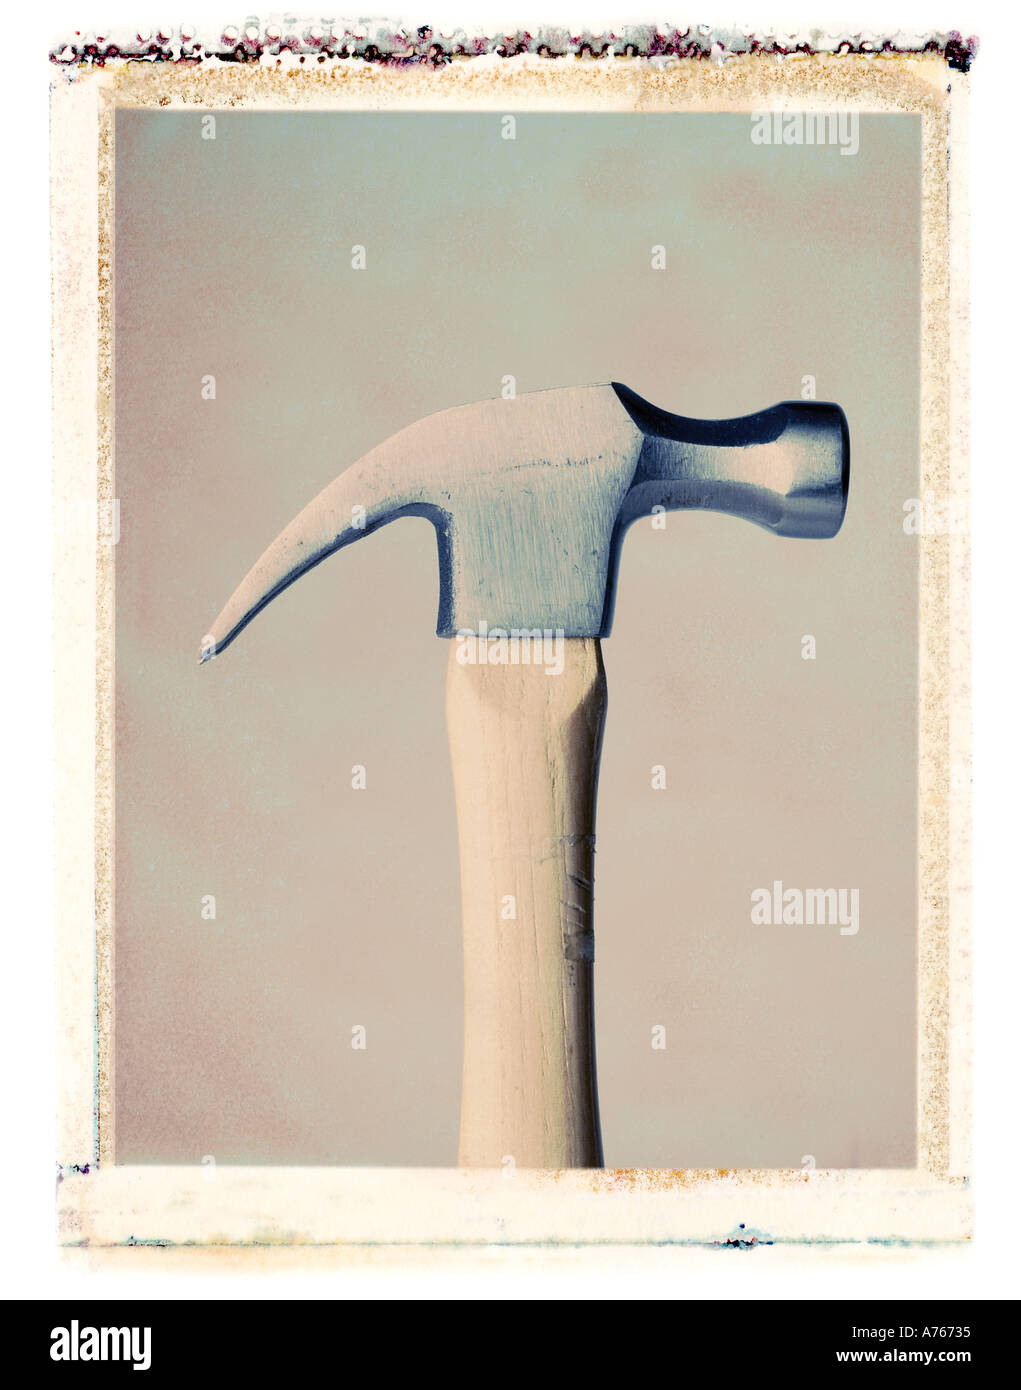 hammer profile Stock Photo